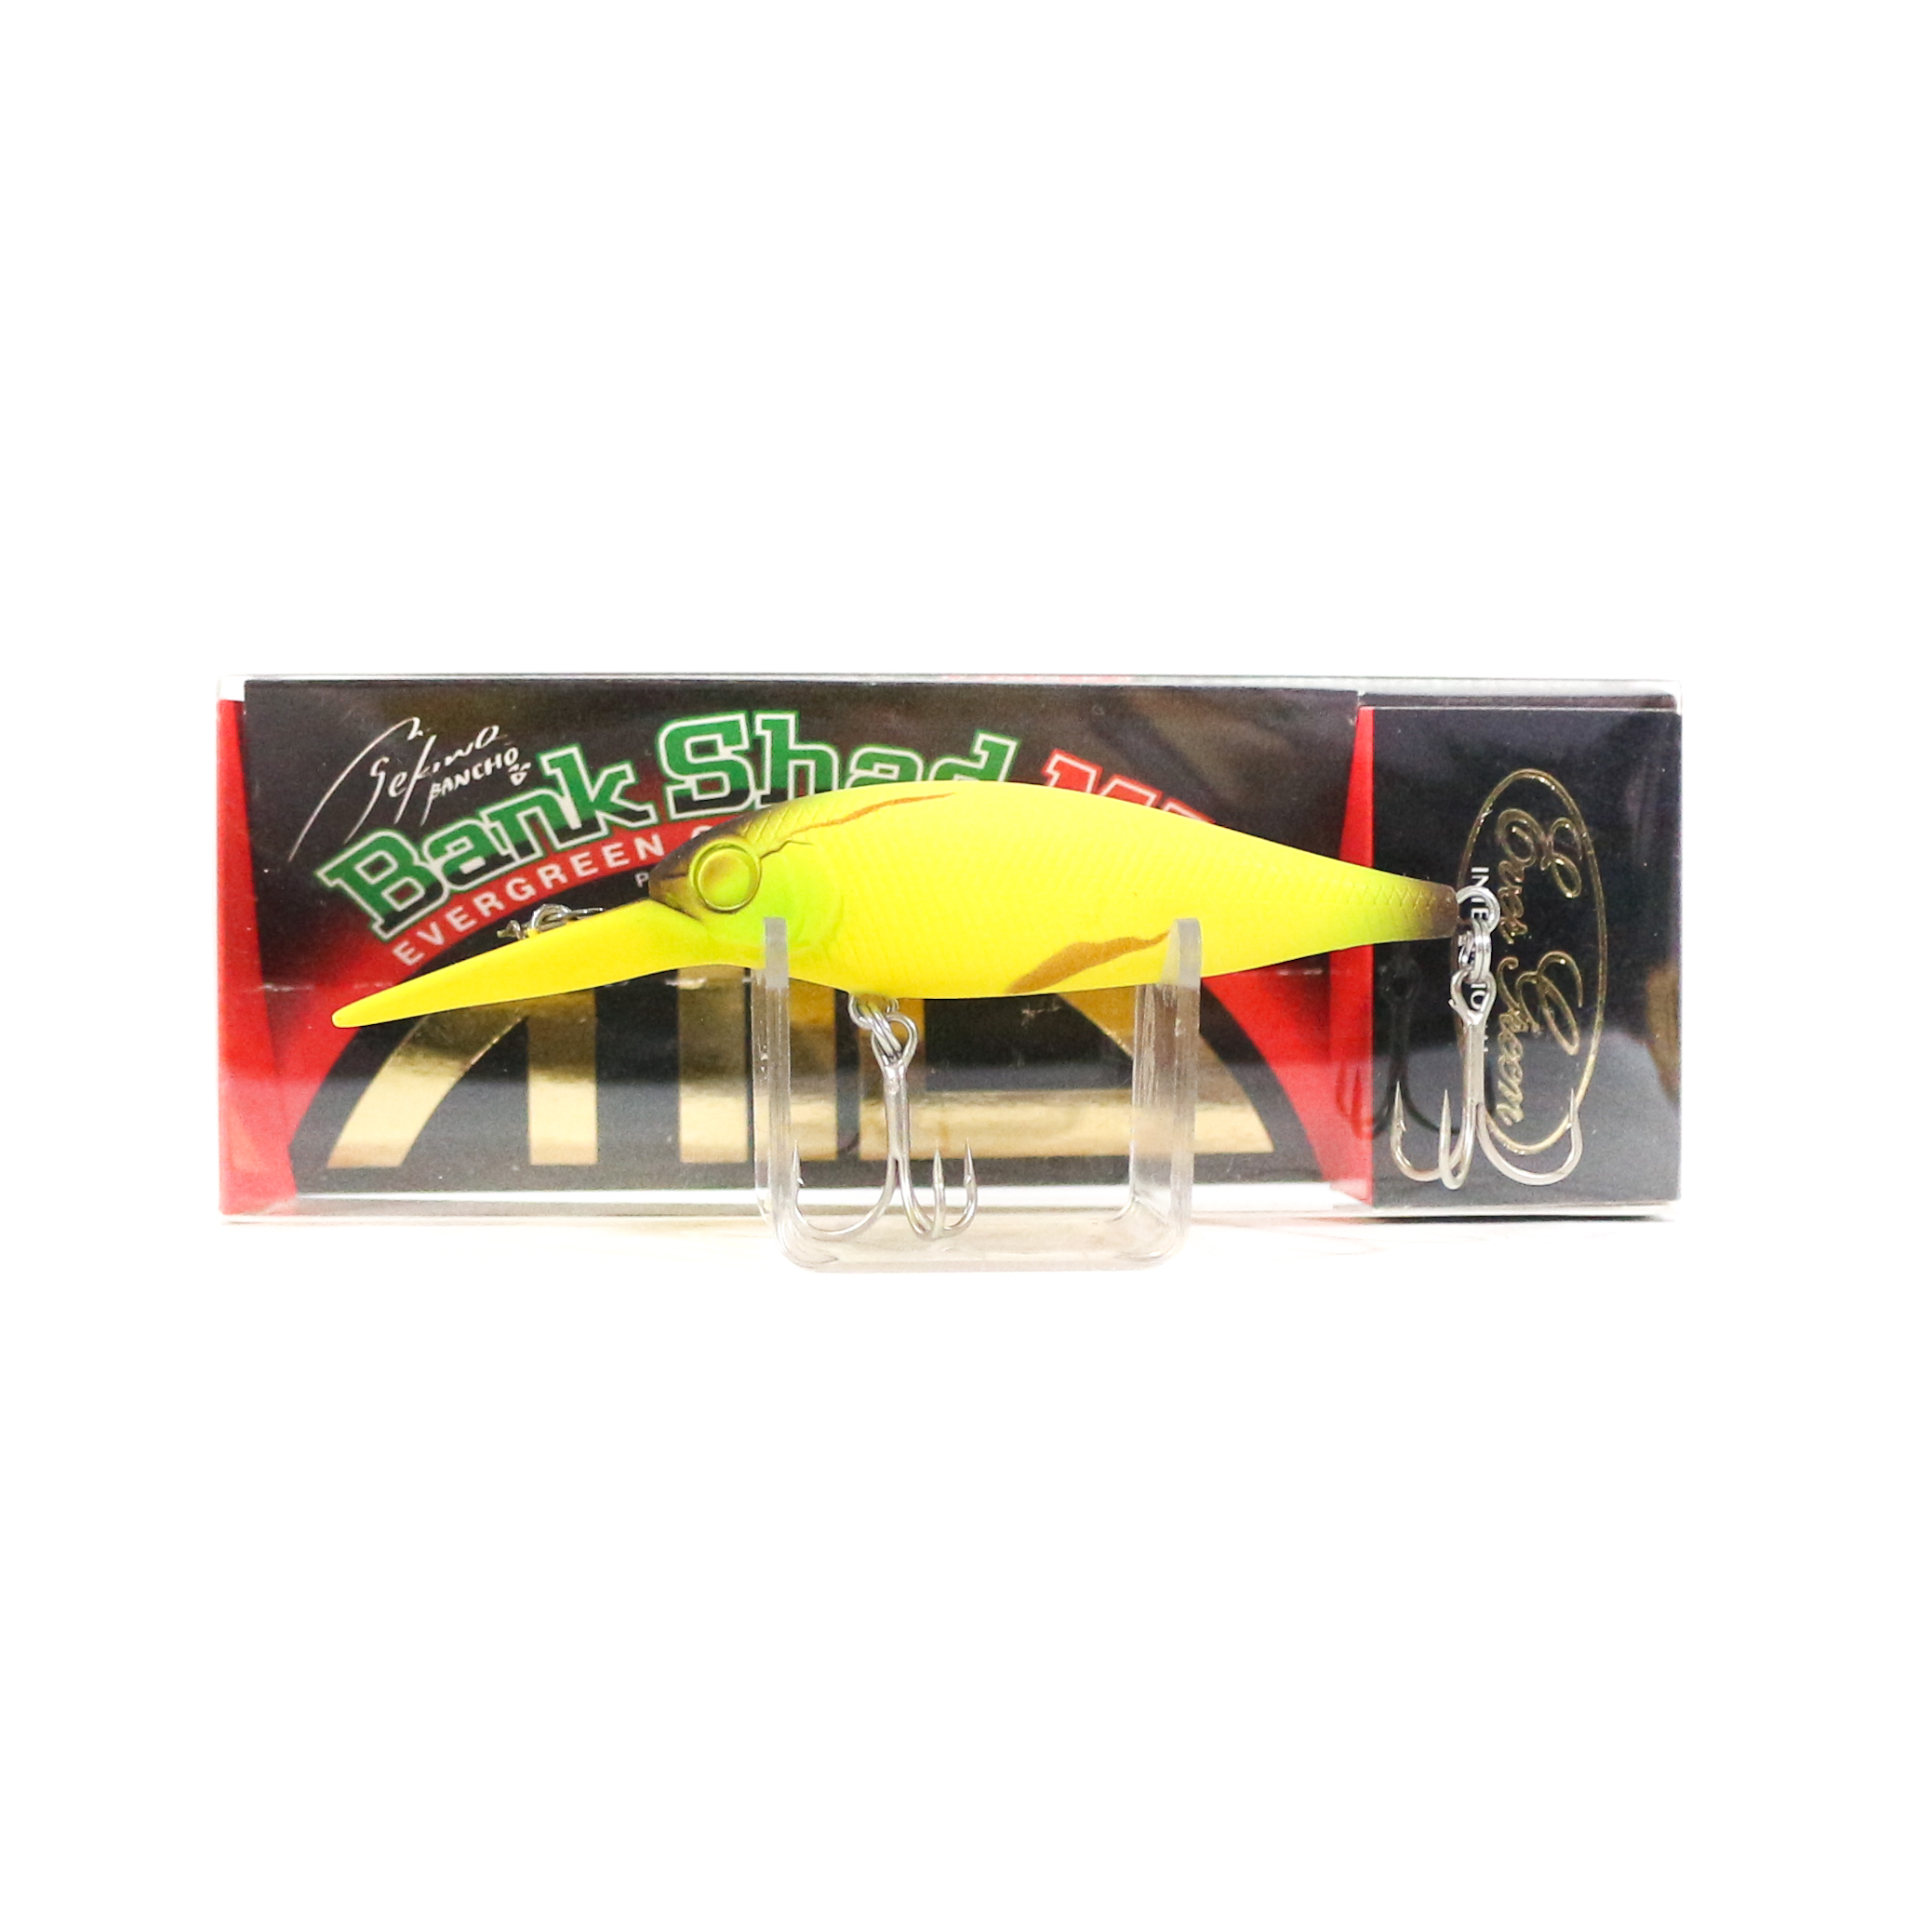 Evergreen Bank Shad Mid Range Floating Lure 877 (8742)